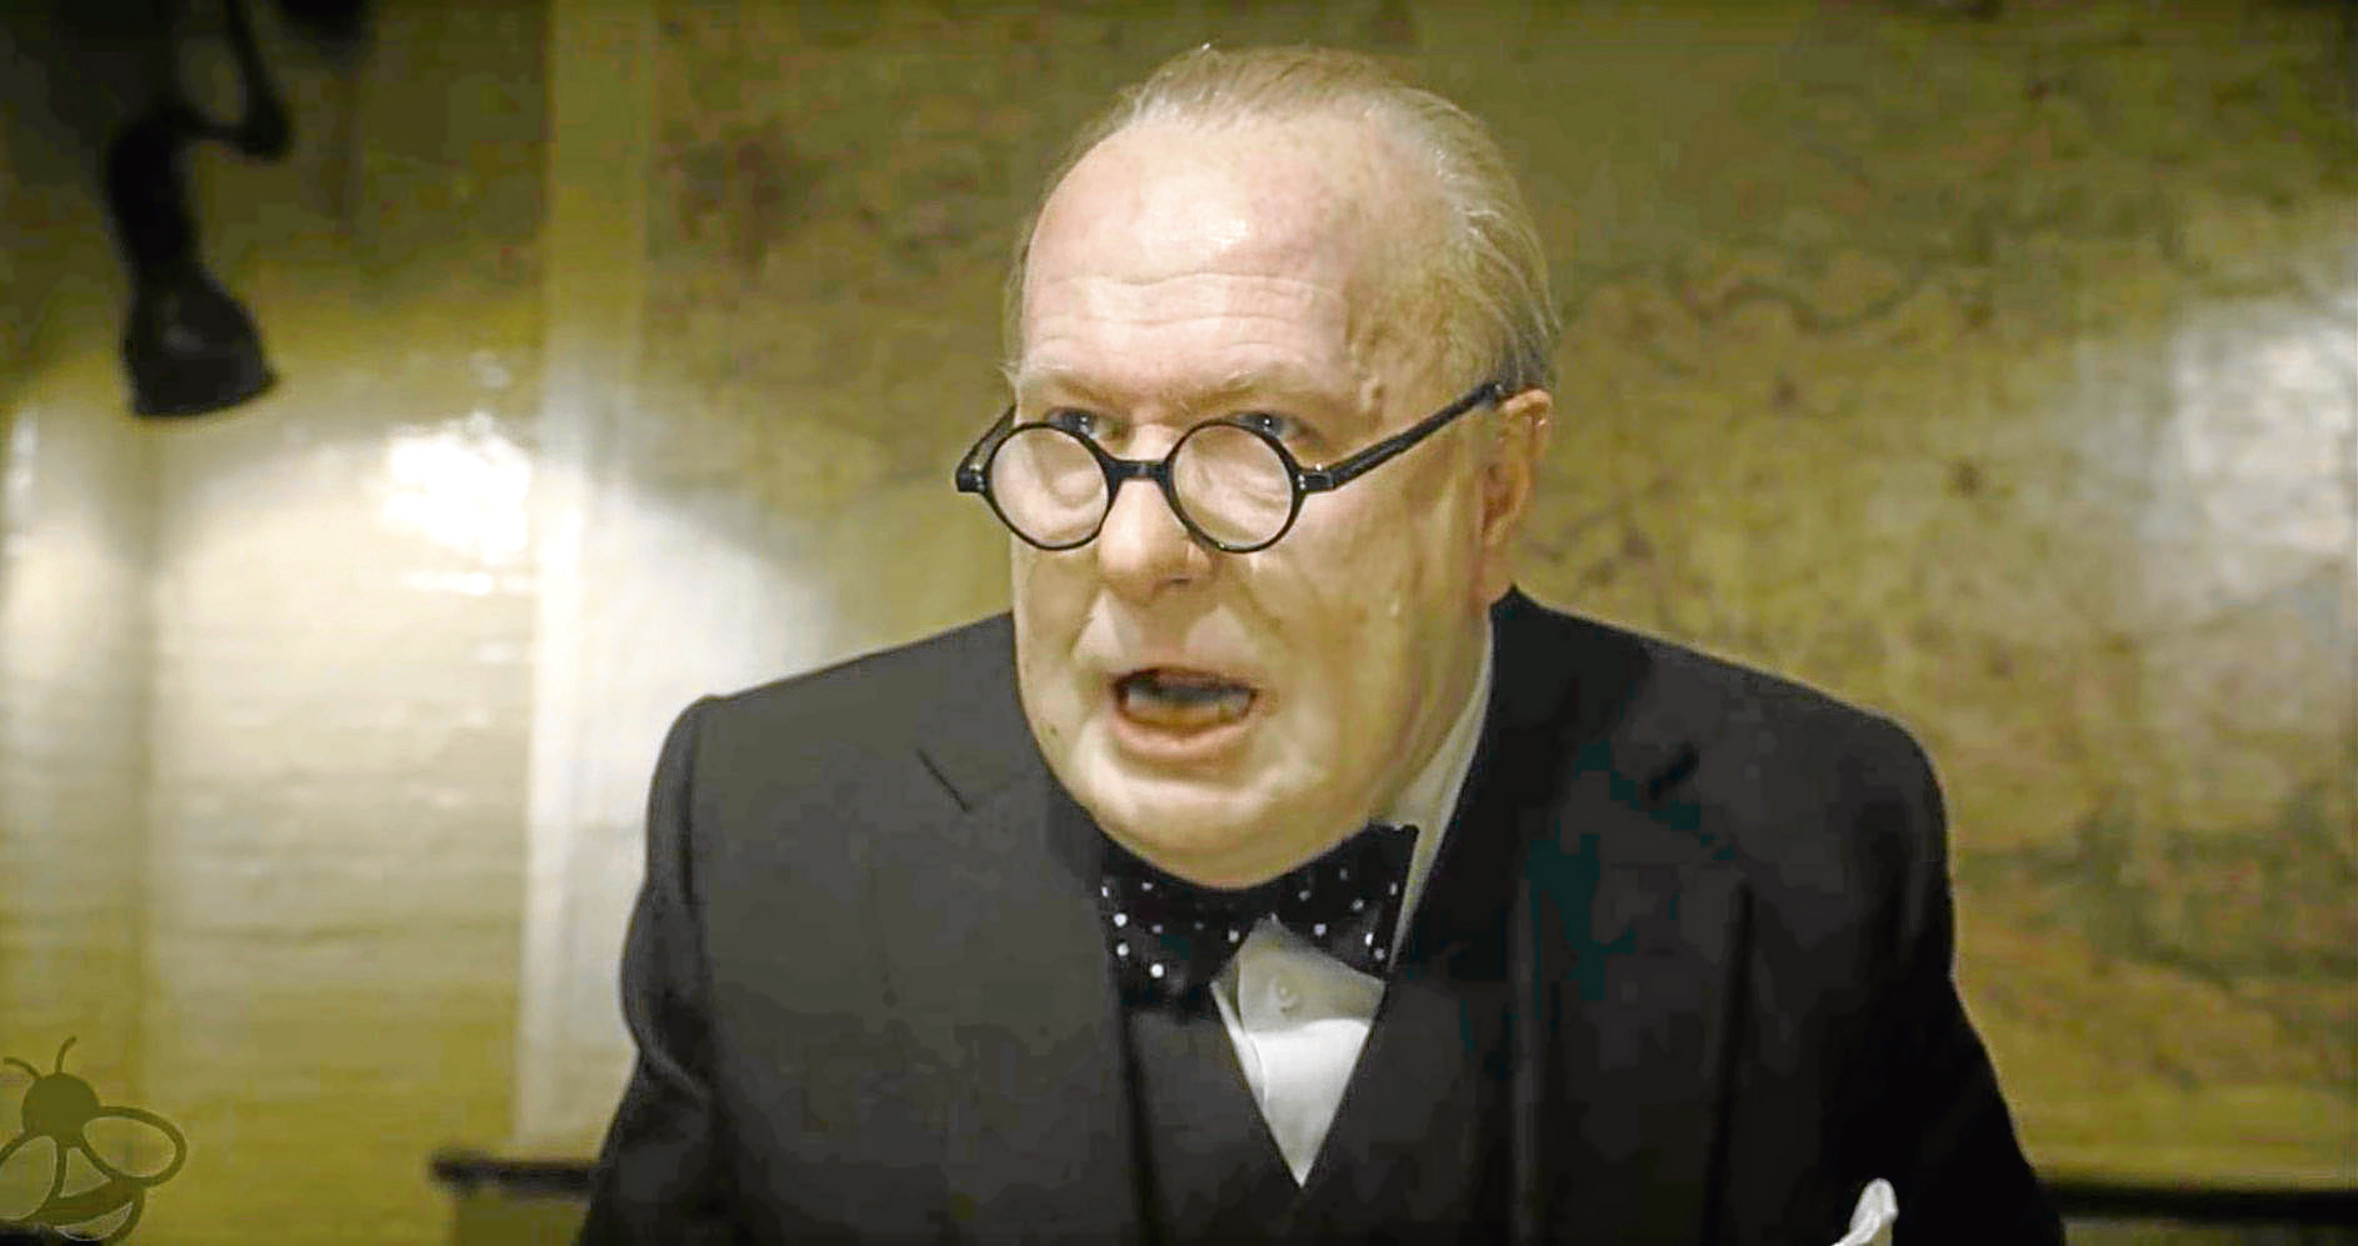 Gary Oldman as Winston Churchill in the film Darkest Hour